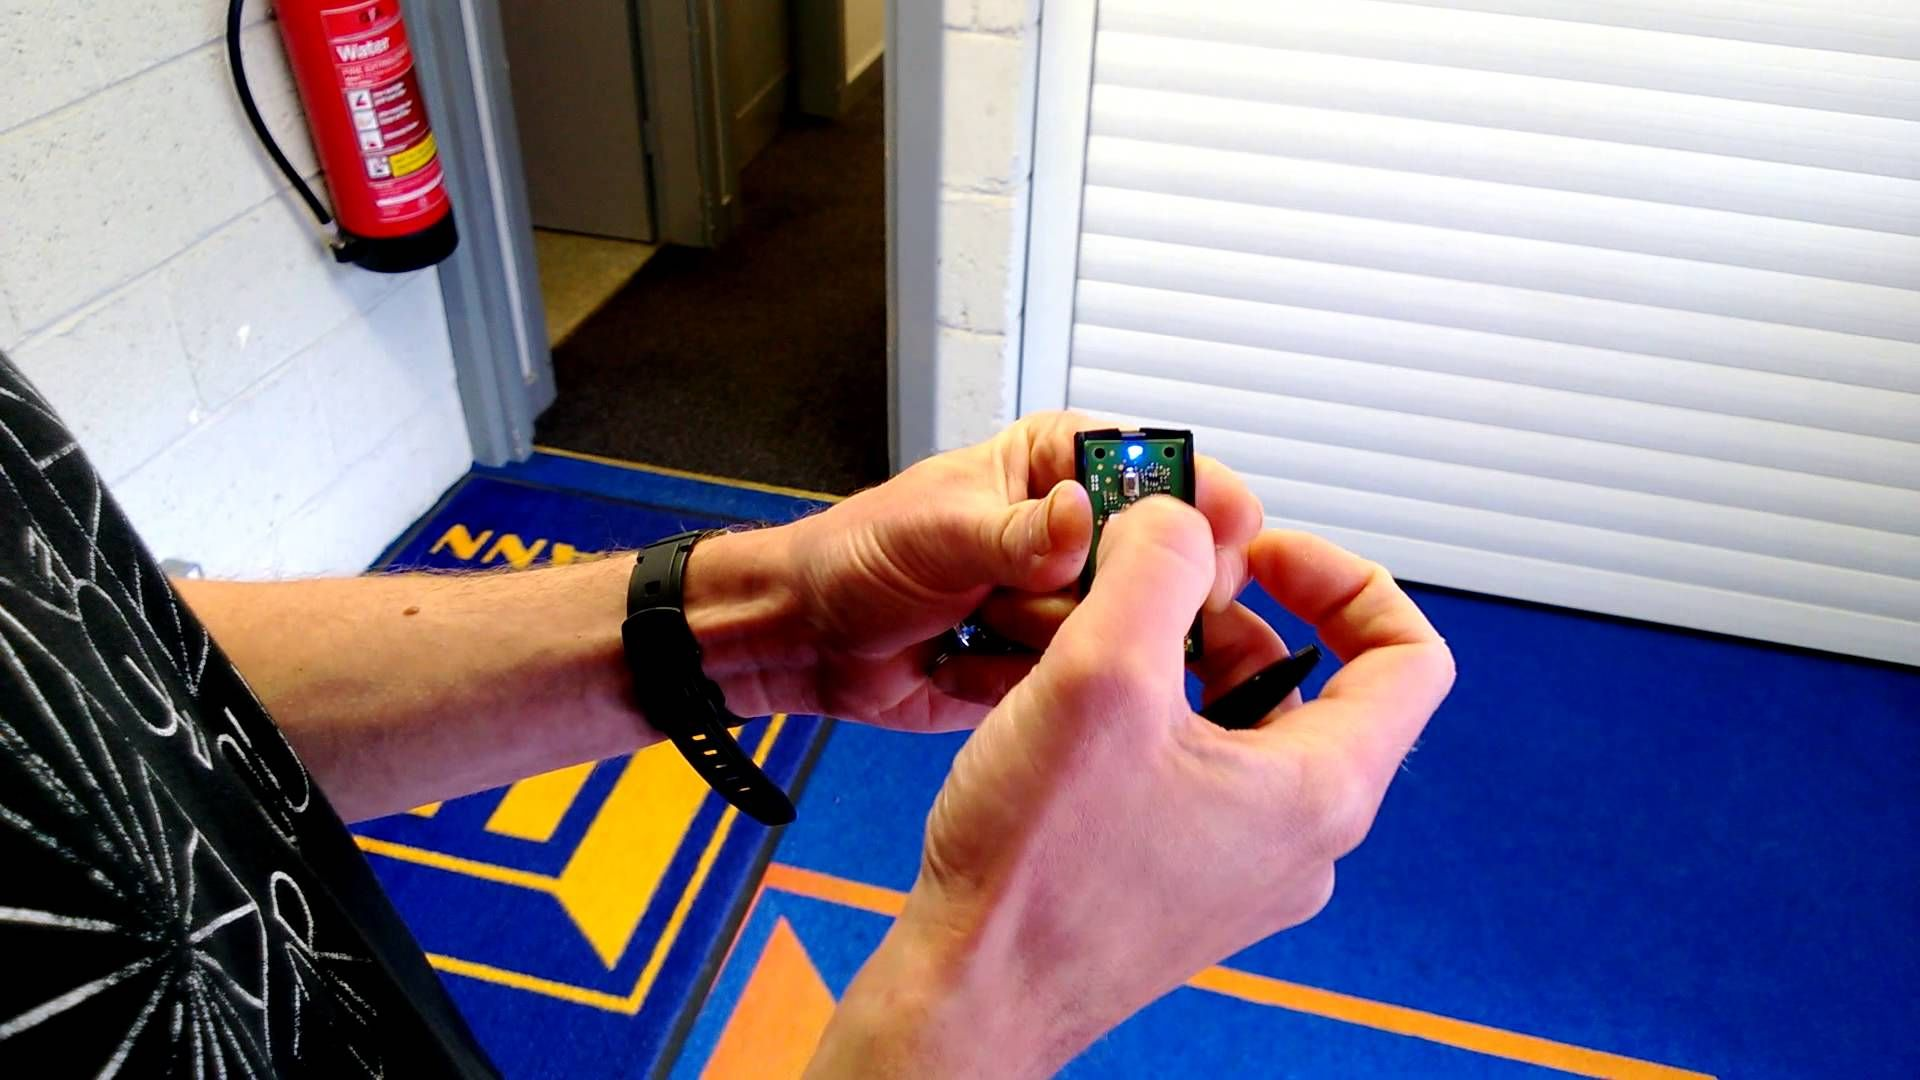 How To Reset A Hormann Bisecur Hand Transmitter Transmitter Hormann Garage Doors Garage Doors